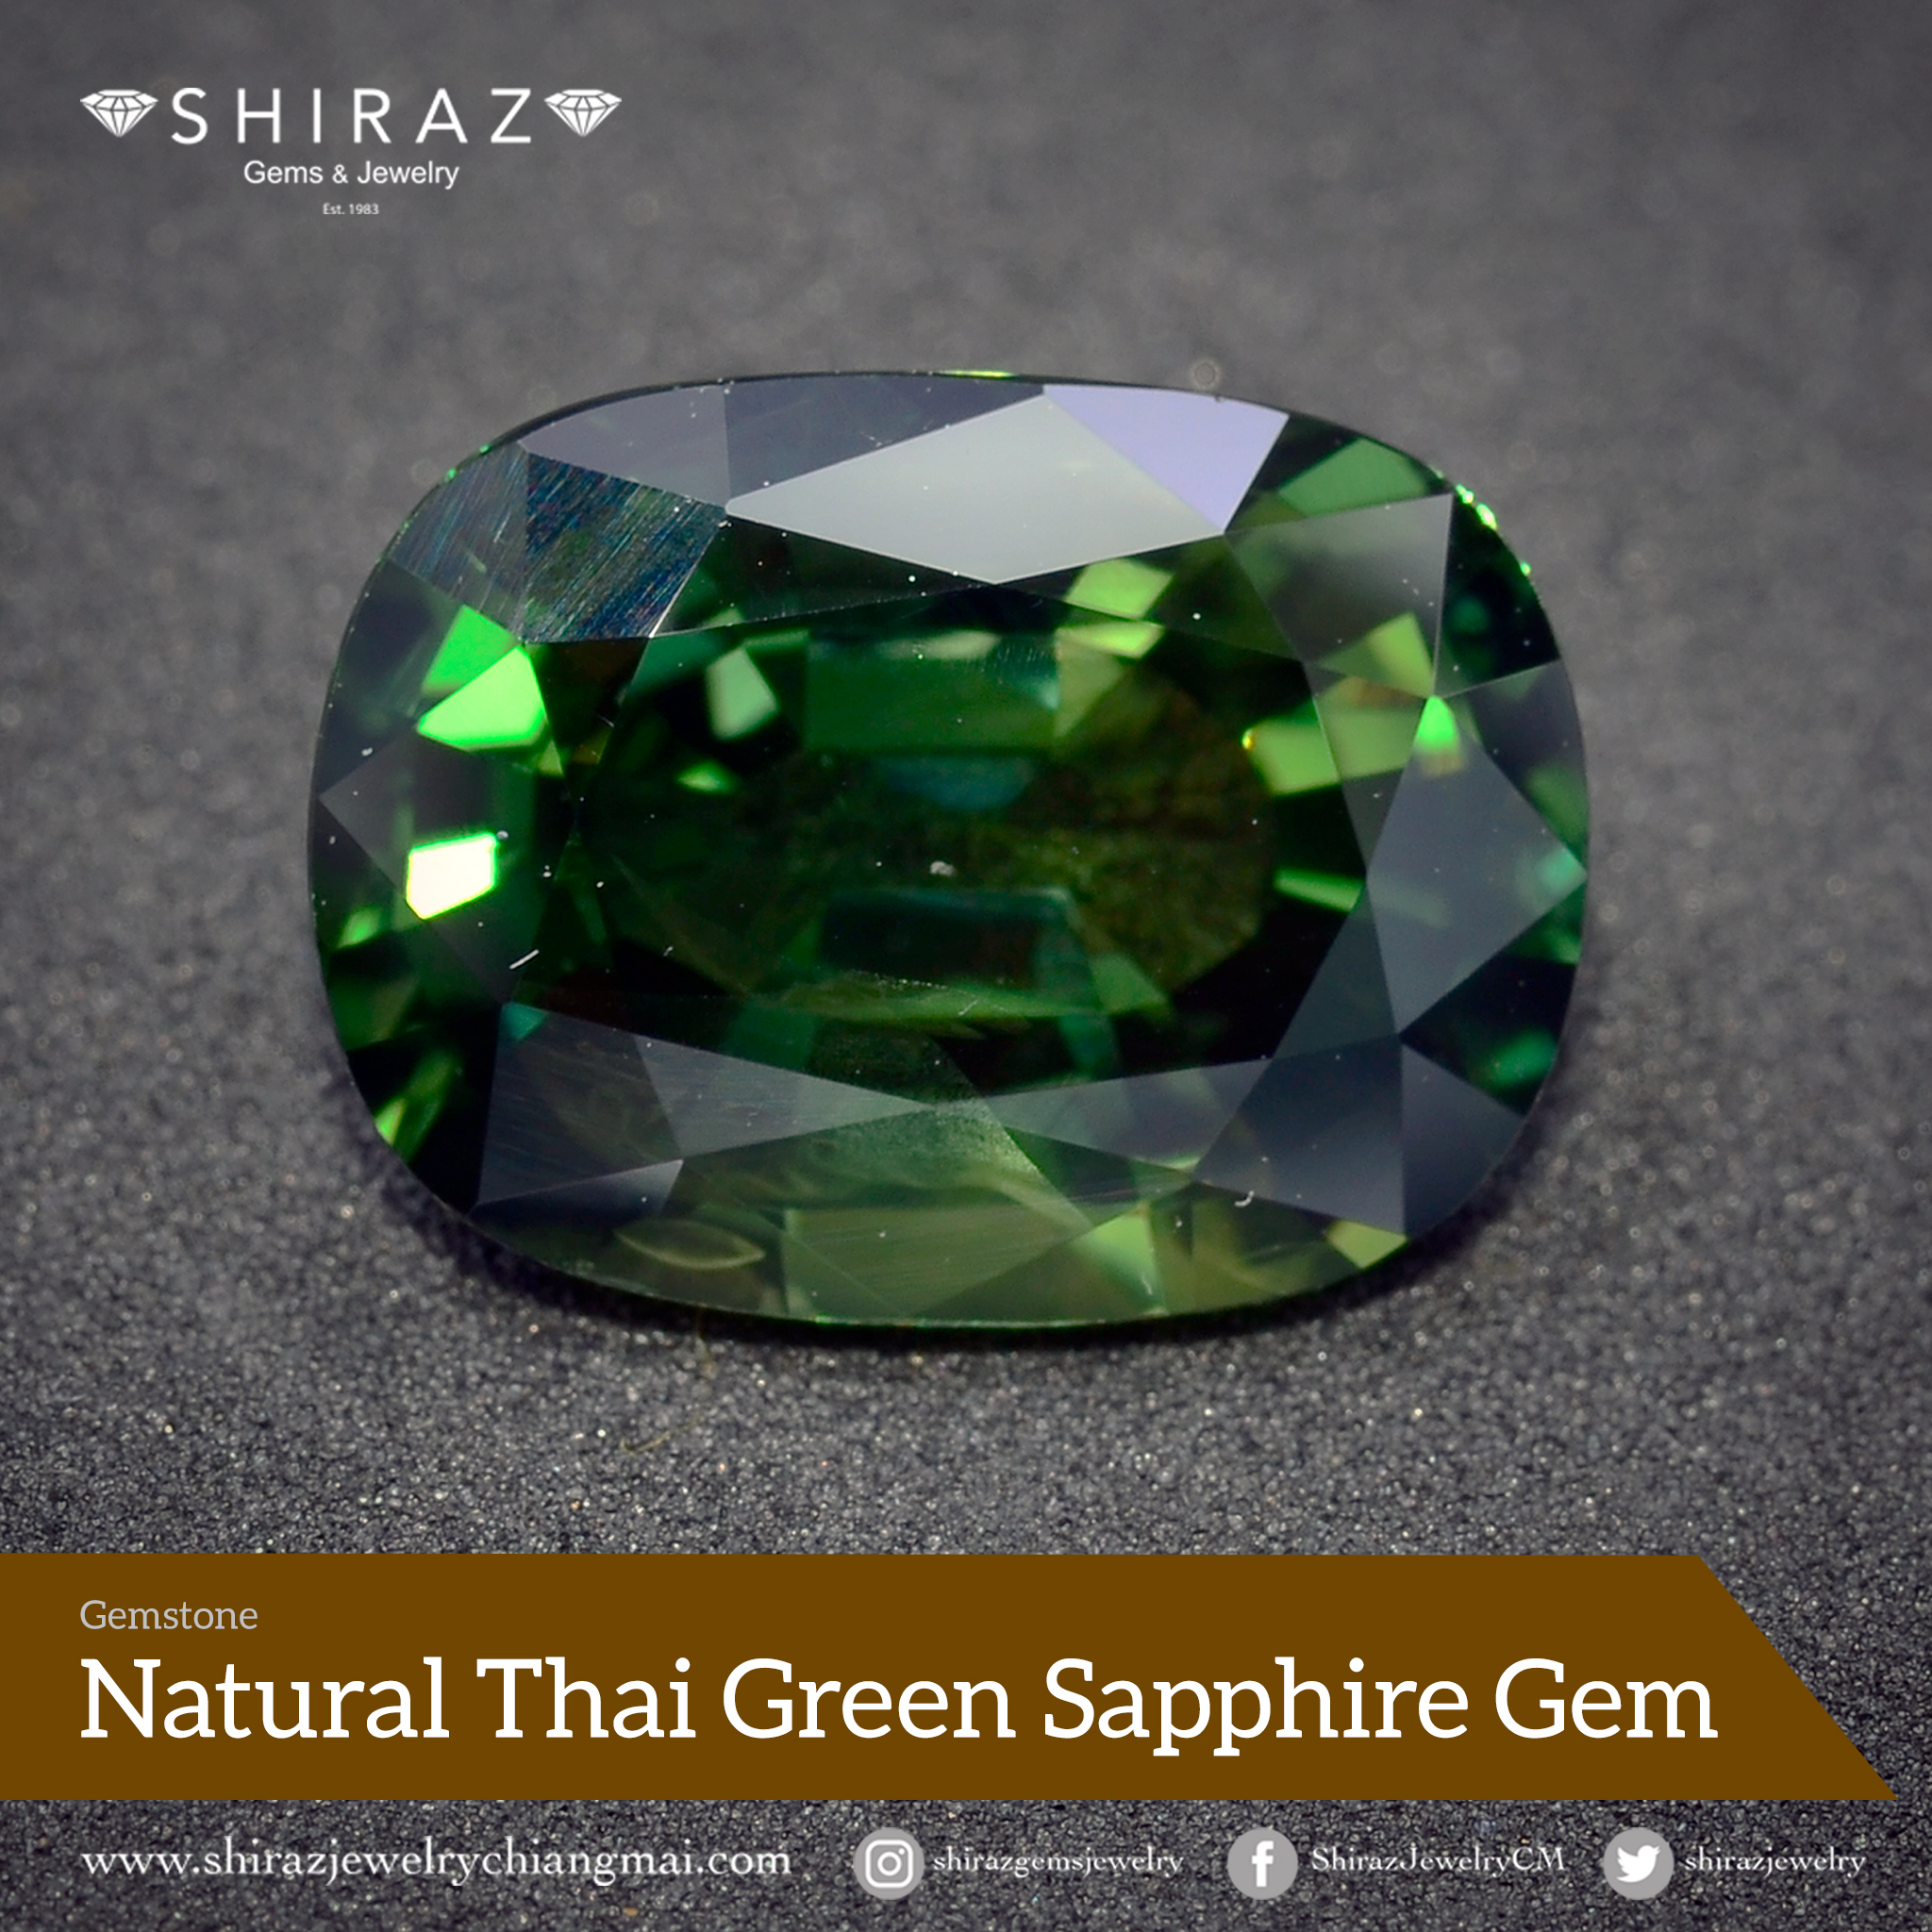 Natural large loose Thai green sapphire from Shiraz Jewelry in Thailand